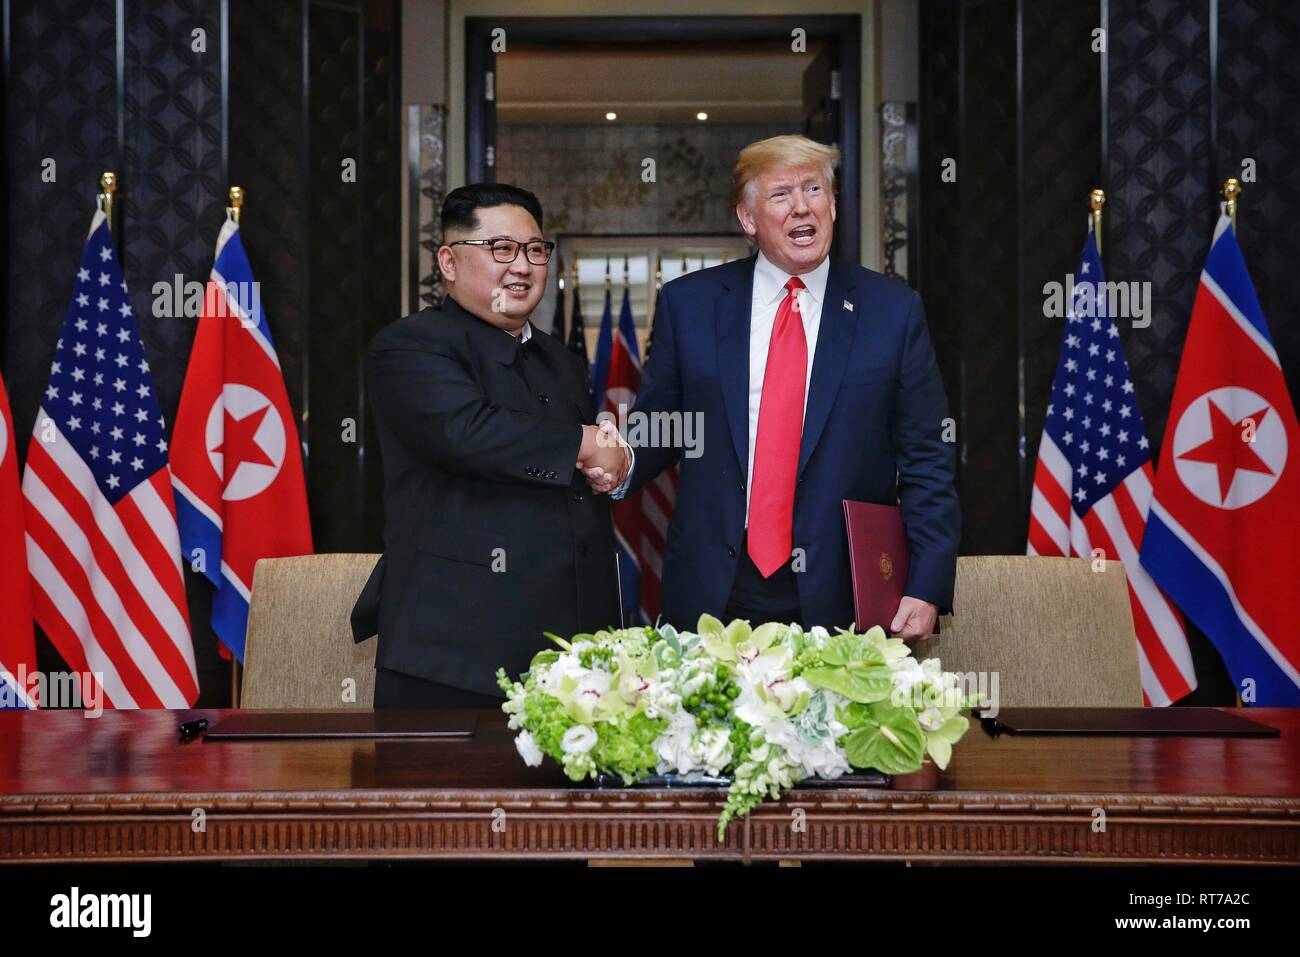 Beijing, China. 12th June, 2018. Top leader of the Democratic People's Republic of Korea (DPRK) Kim Jong Un (L) shakes hands with U.S. President Donald Trump during the signing ceremony of a joint statement in Singapore on June 12, 2018. Credit: Ministry of Communication and Information of Singapore/Xinhua/Alamy Live News Stock Photo